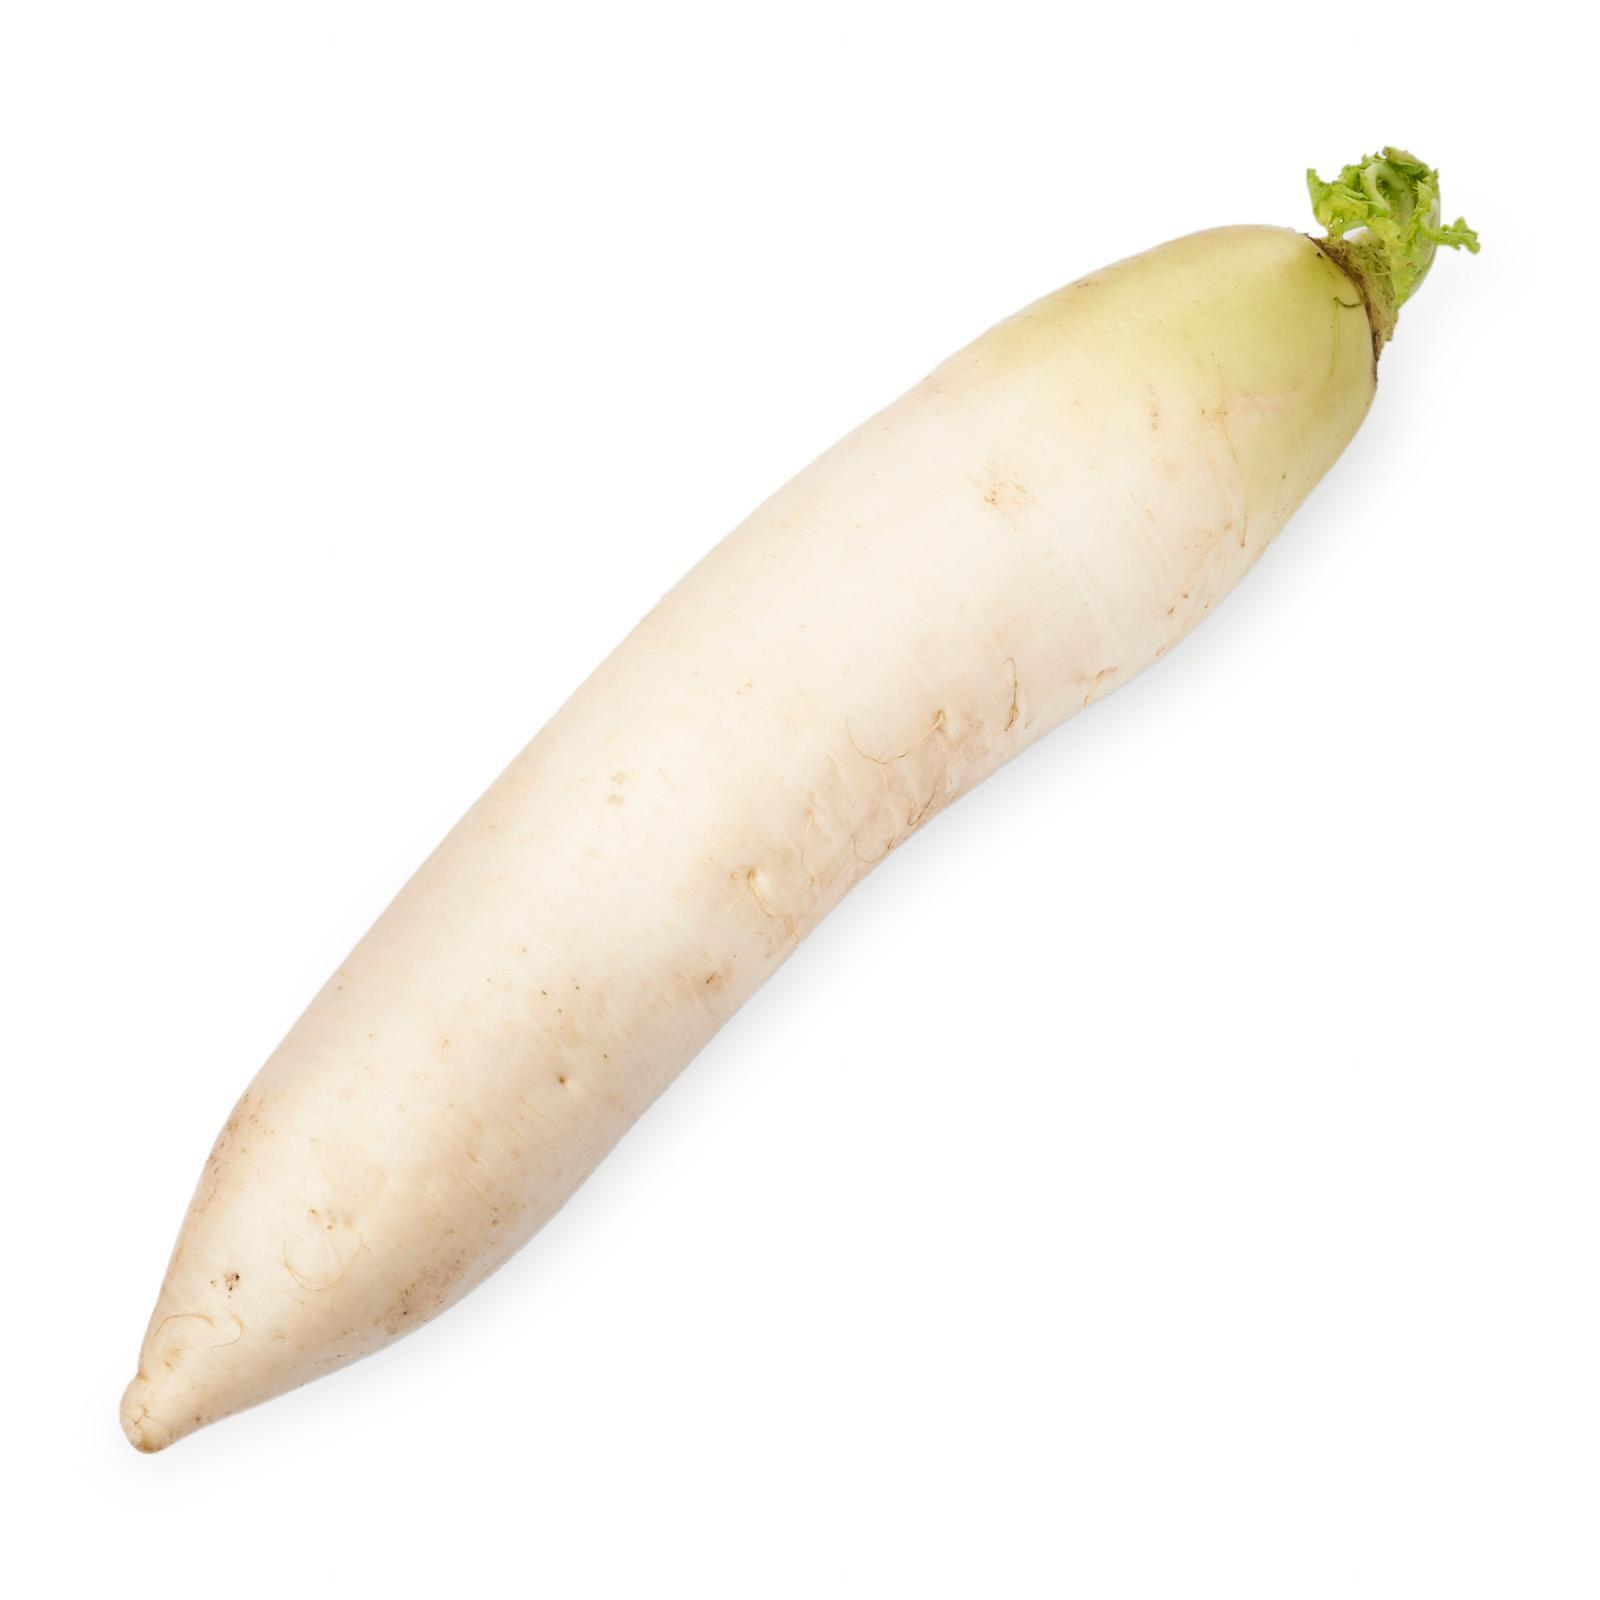 Kirei Fresh And Delicious Japanese Daikon White Radish (Air flown direct from Japan) 1 PCS Pack